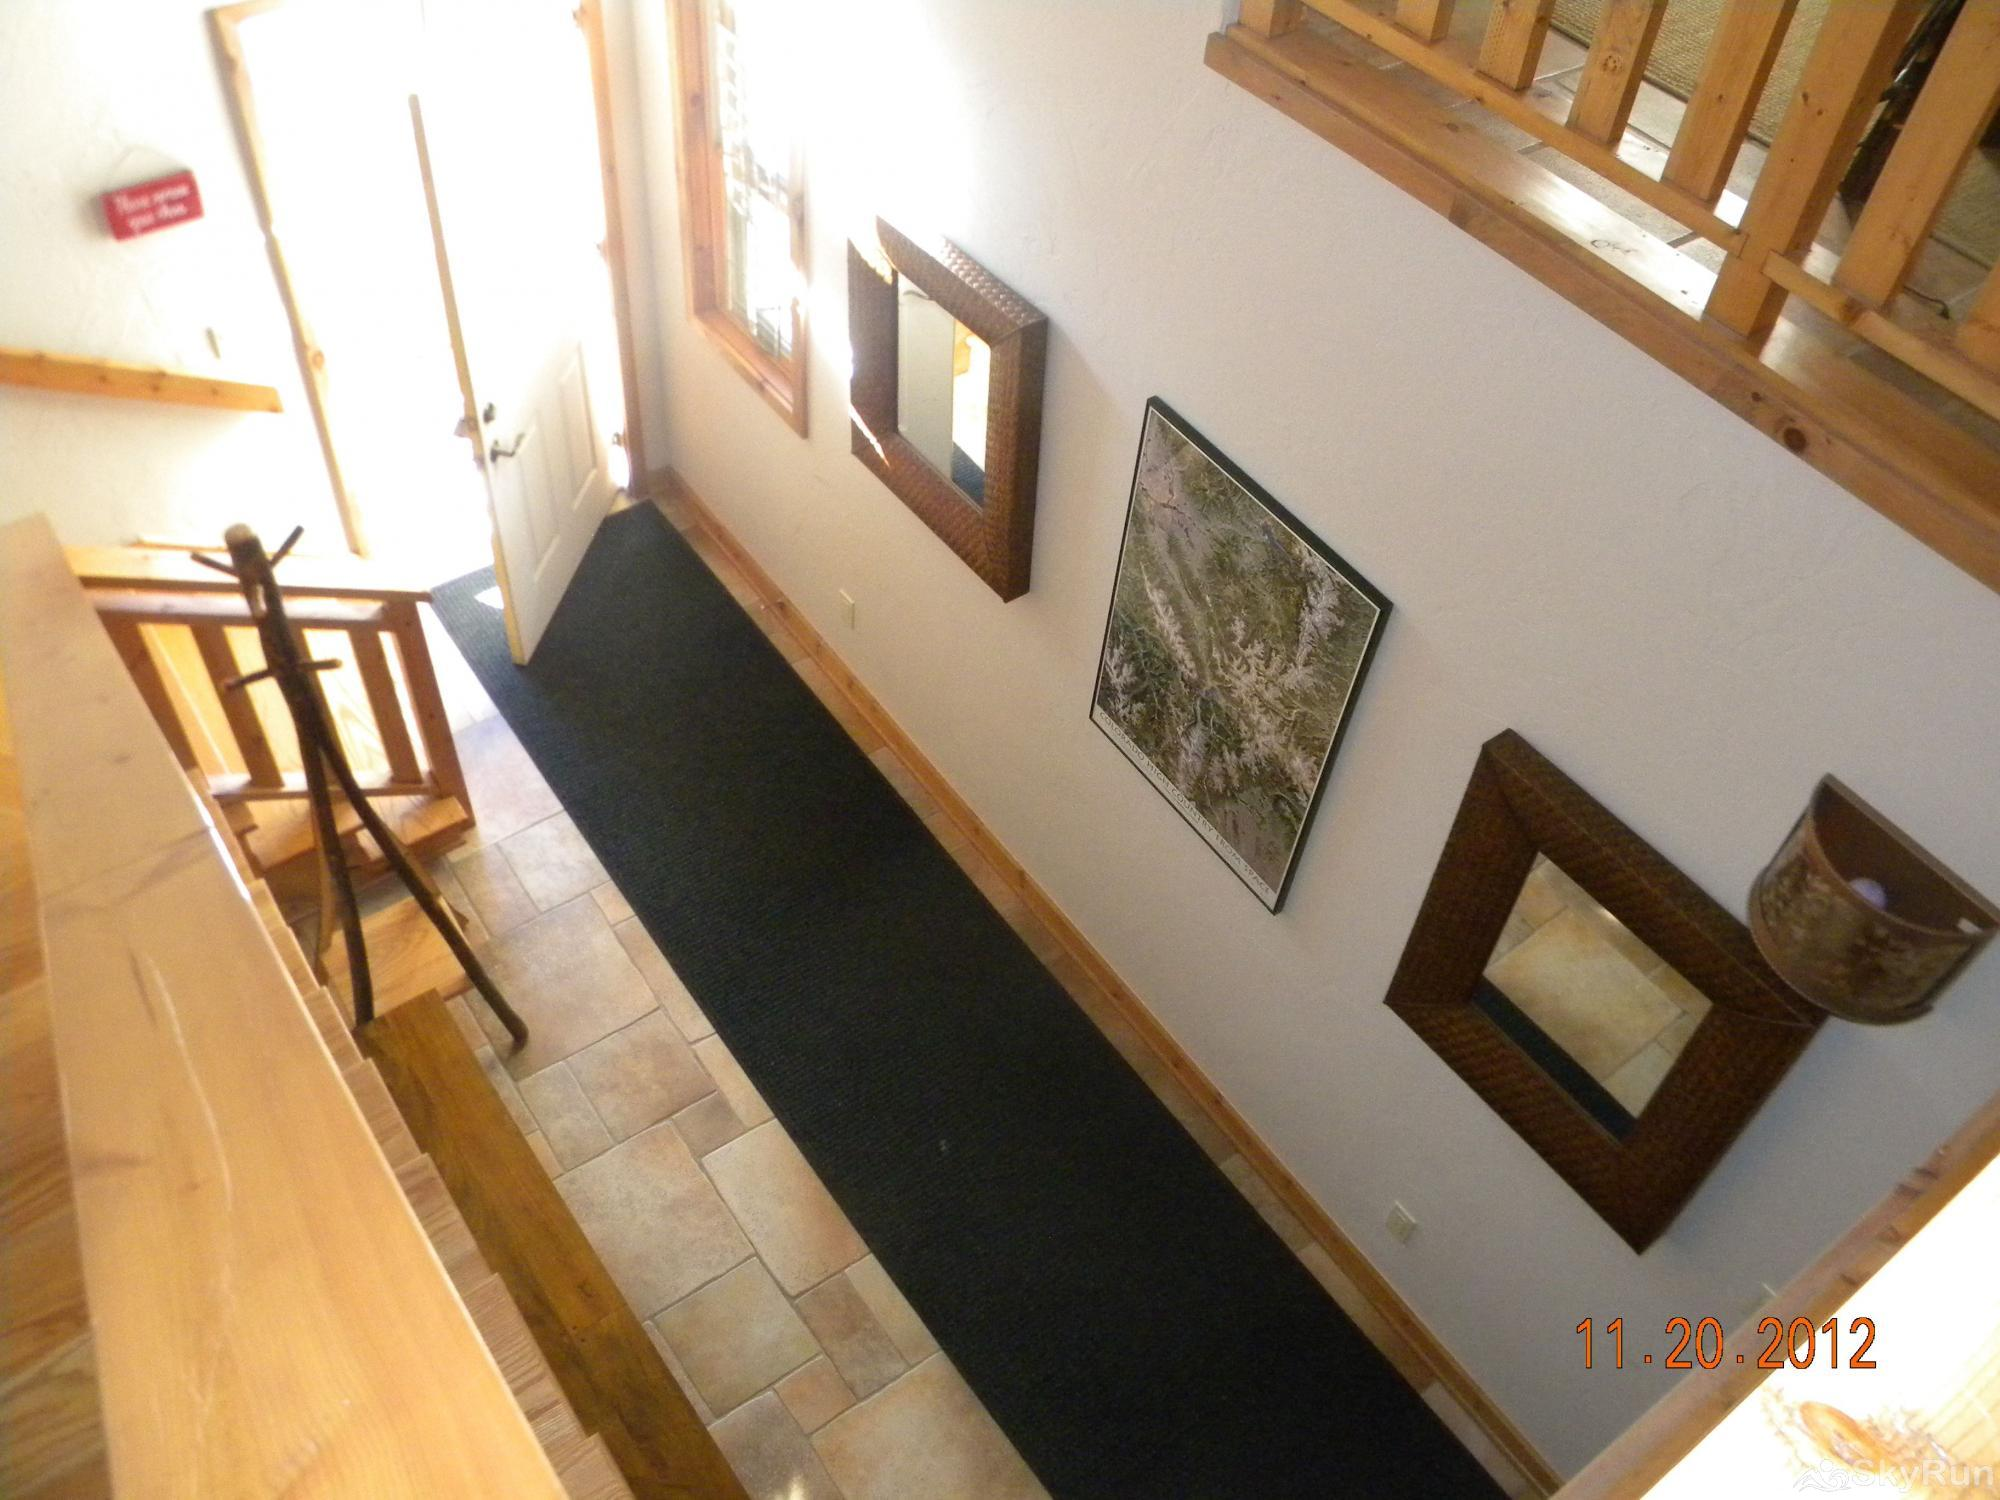 401 Creekside Townhome 2BR 3BA Aerial view of entry way